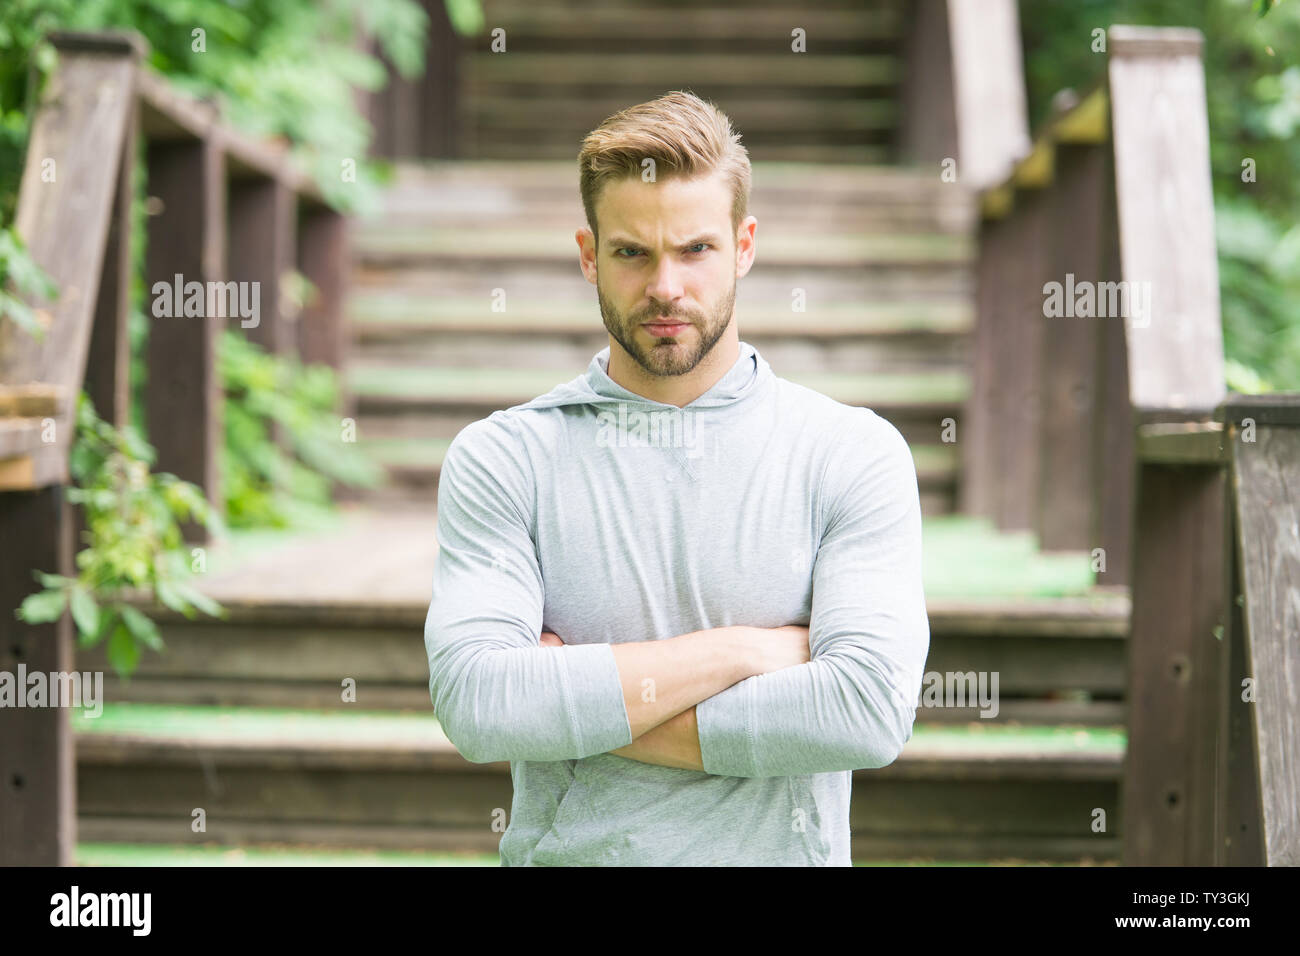 Overcome any obstacles. Sportsman lifestyle. Handsome athlete stairs background. Male beauty. Sport wellbeing and self care. Handsome man sporty outfit look confident. Guy handsome bearded face. - Stock Image